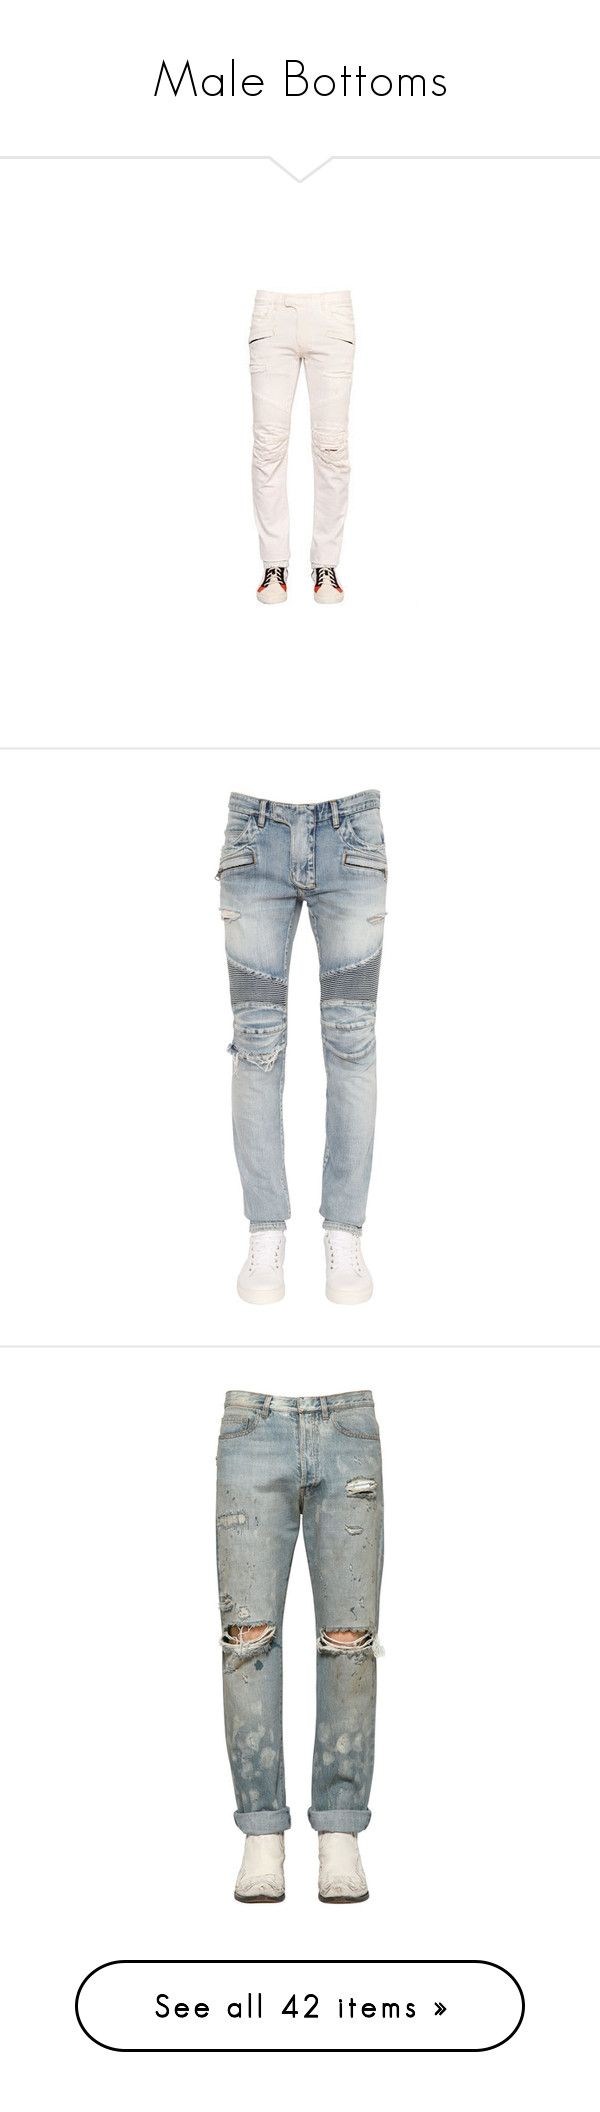 """""""Male Bottoms"""" by purrfectas ❤ liked on Polyvore featuring men's fashion, men's clothing, men's jeans, mens destroyed jeans, mens zipper jeans, mens distressed jeans, mens torn jeans, mens biker jeans, white and mens jeans"""